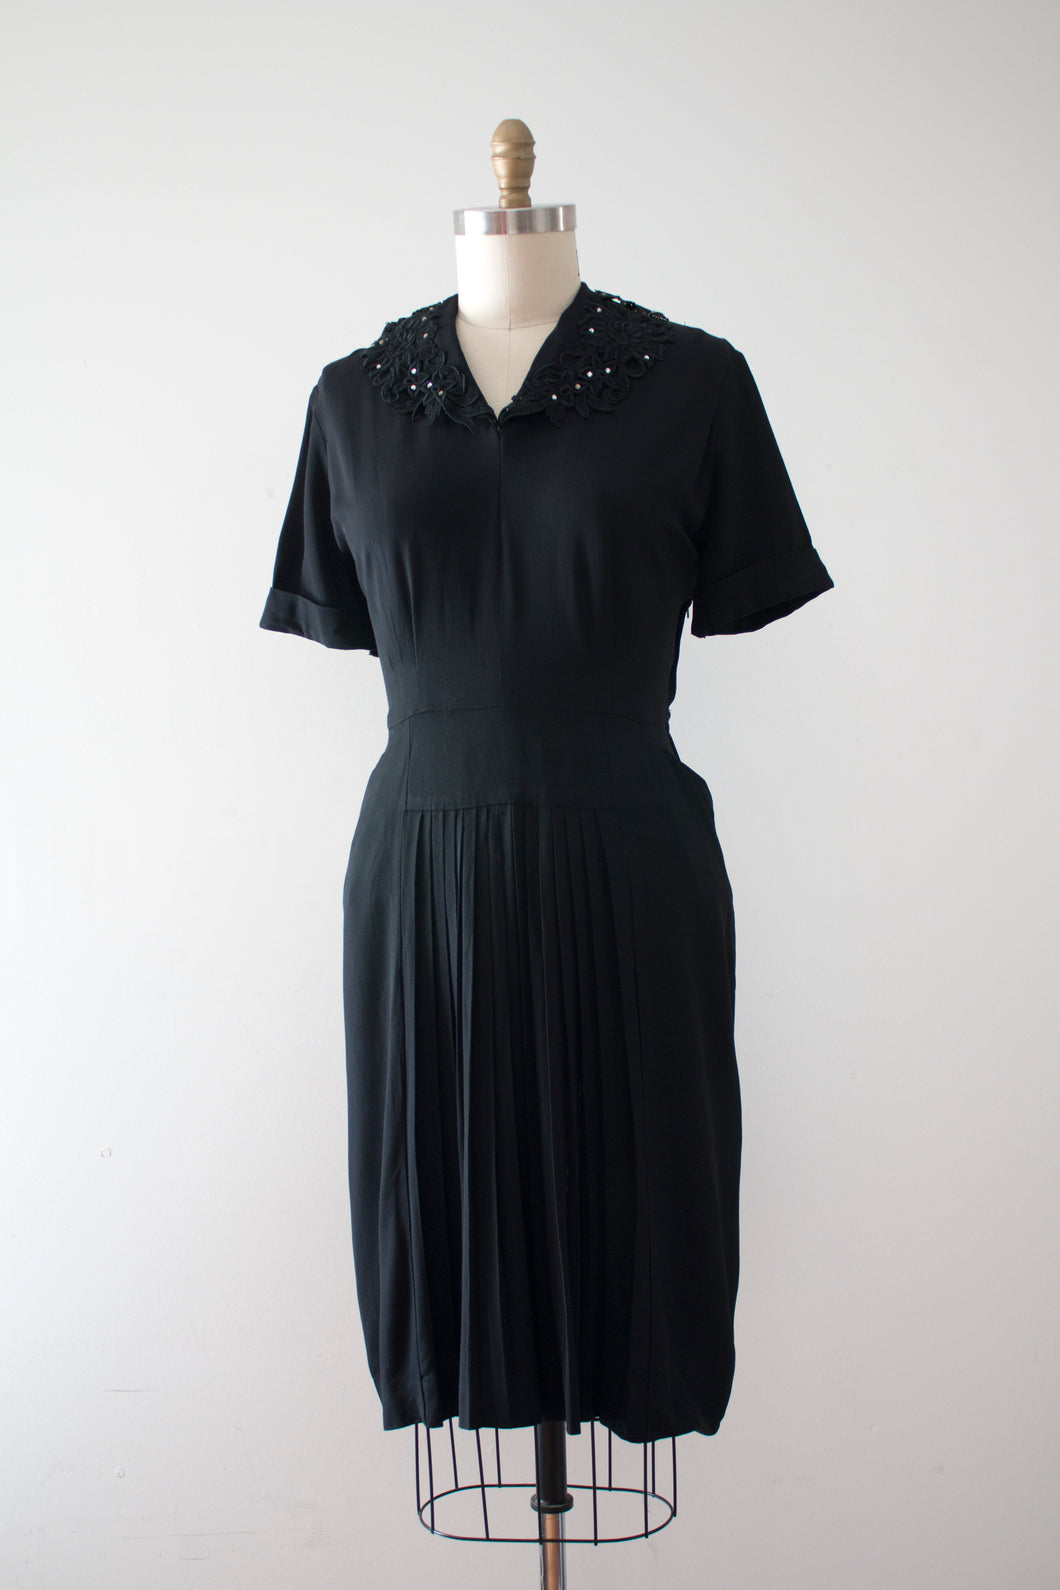 vintage 1940s black rayon evening dress